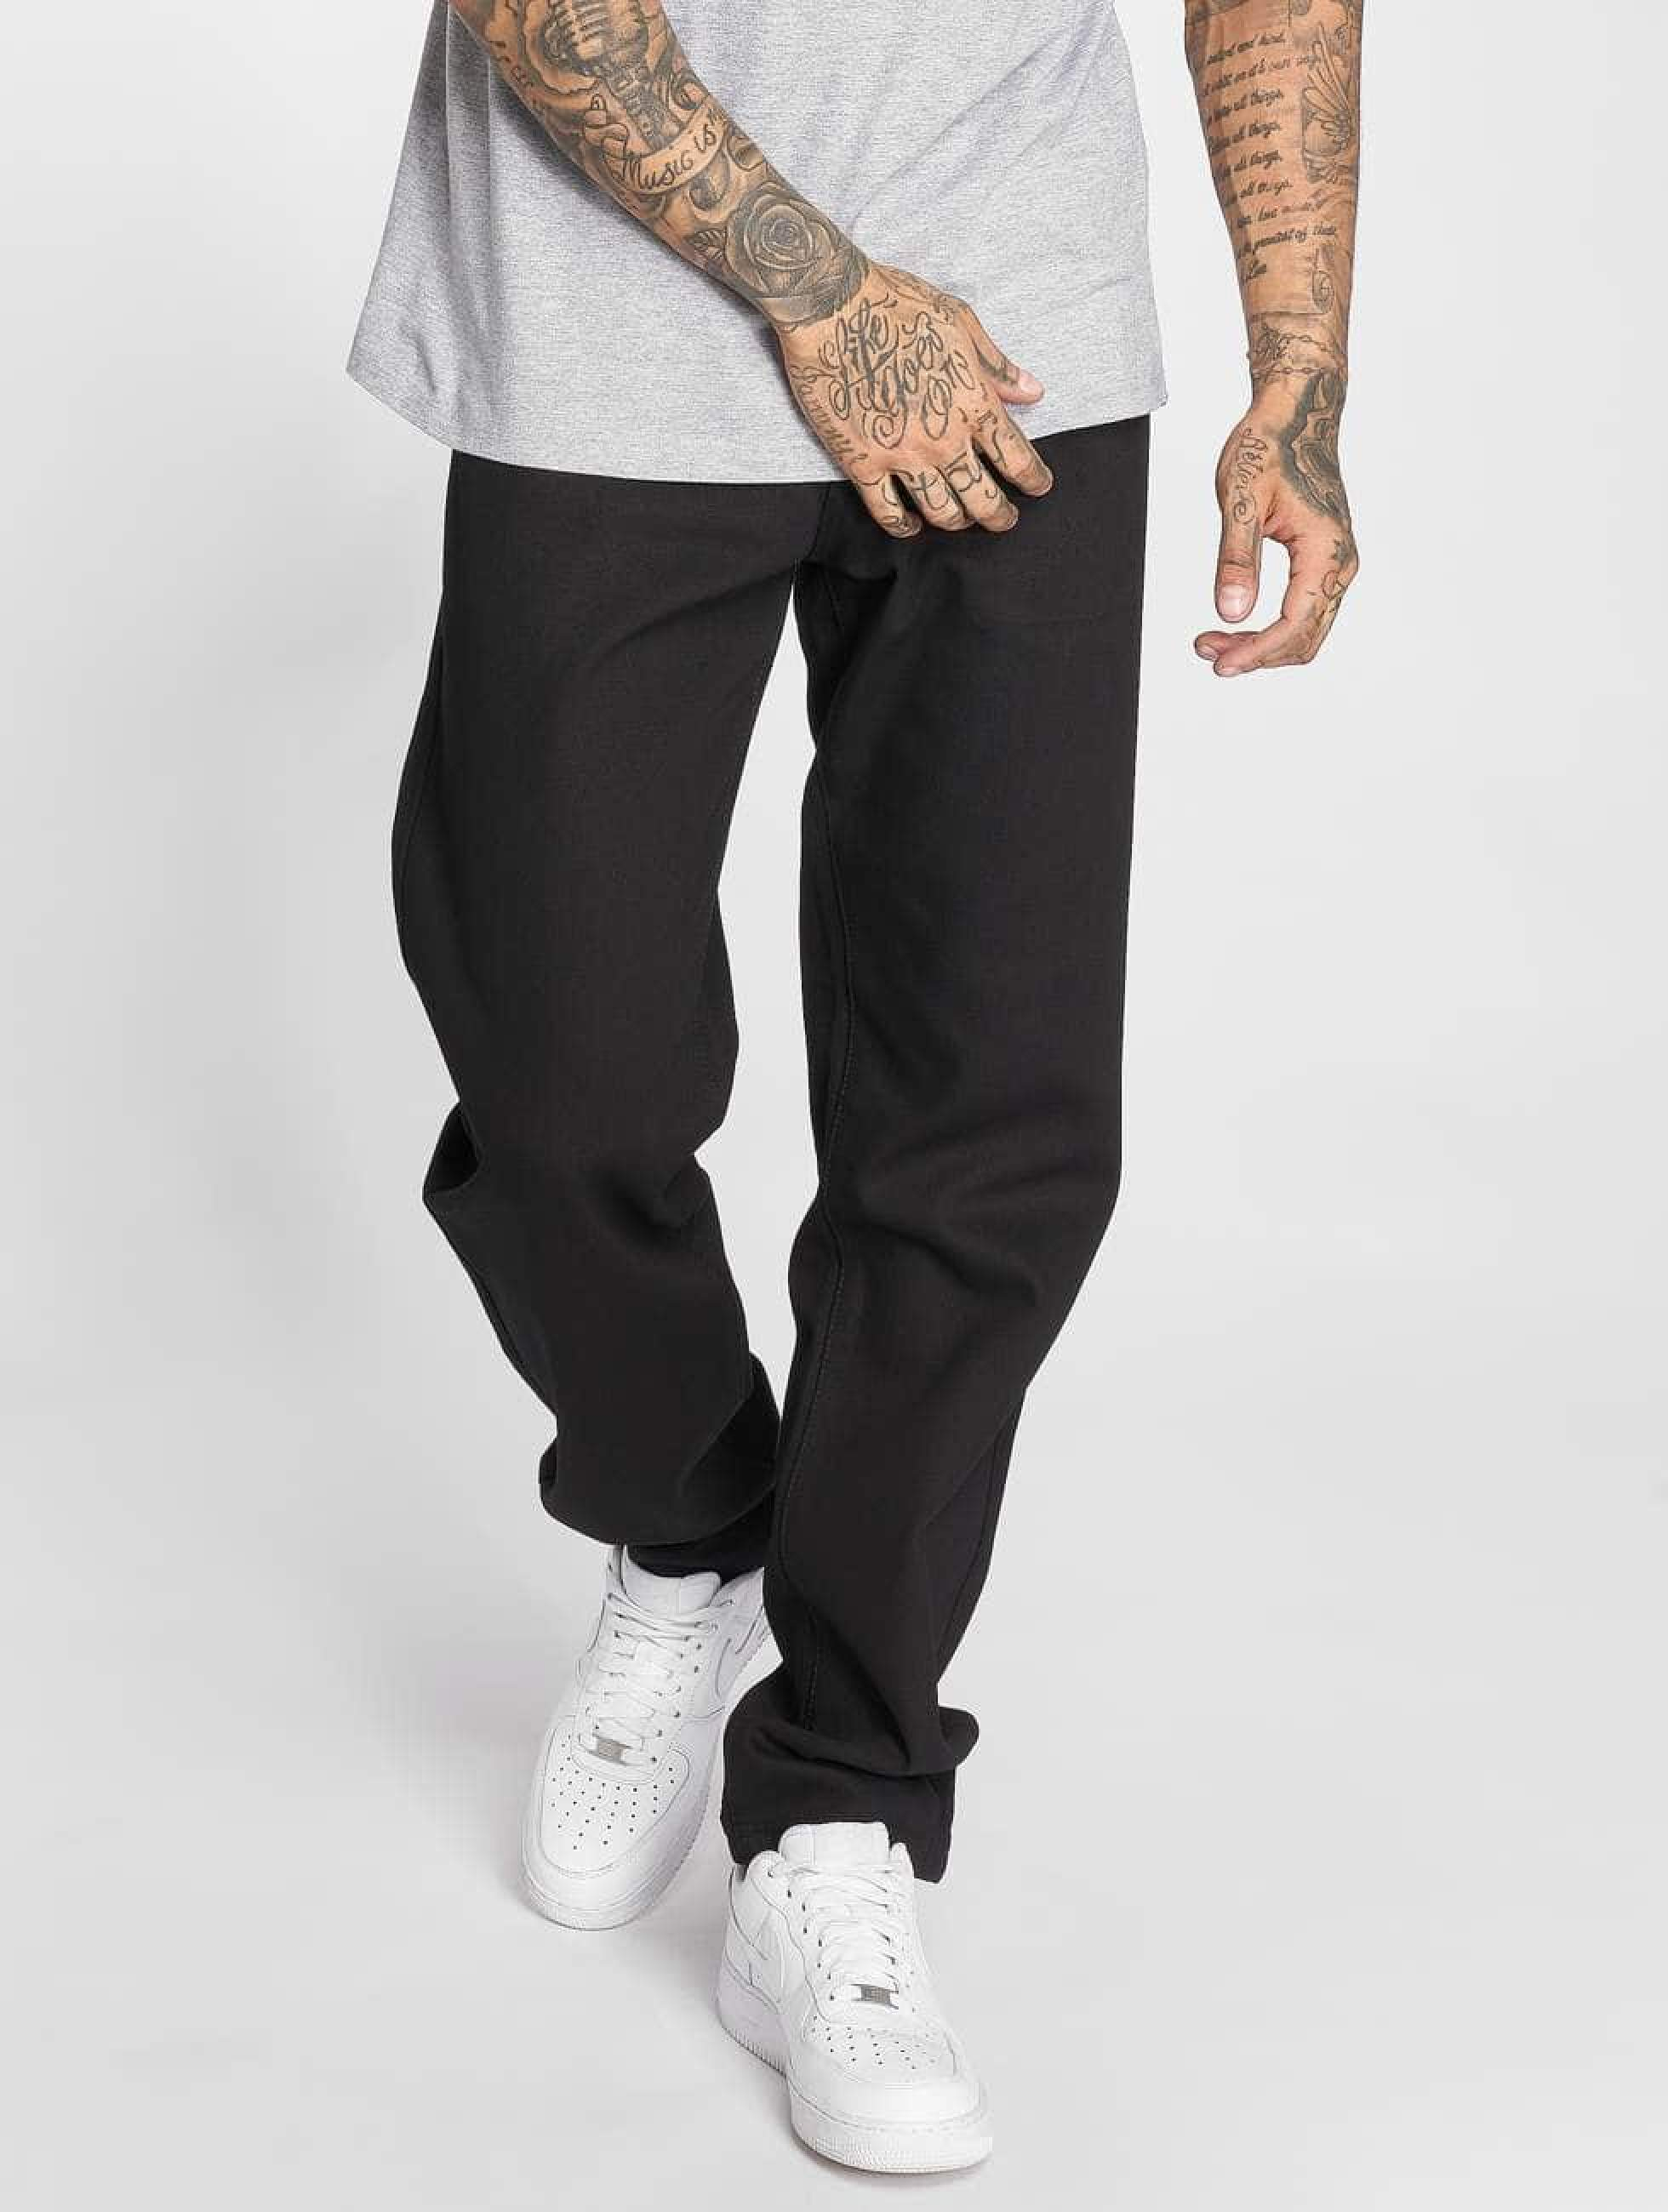 Thug Life / Carrot Fit Jeans B . Denim in black W 38 L 34